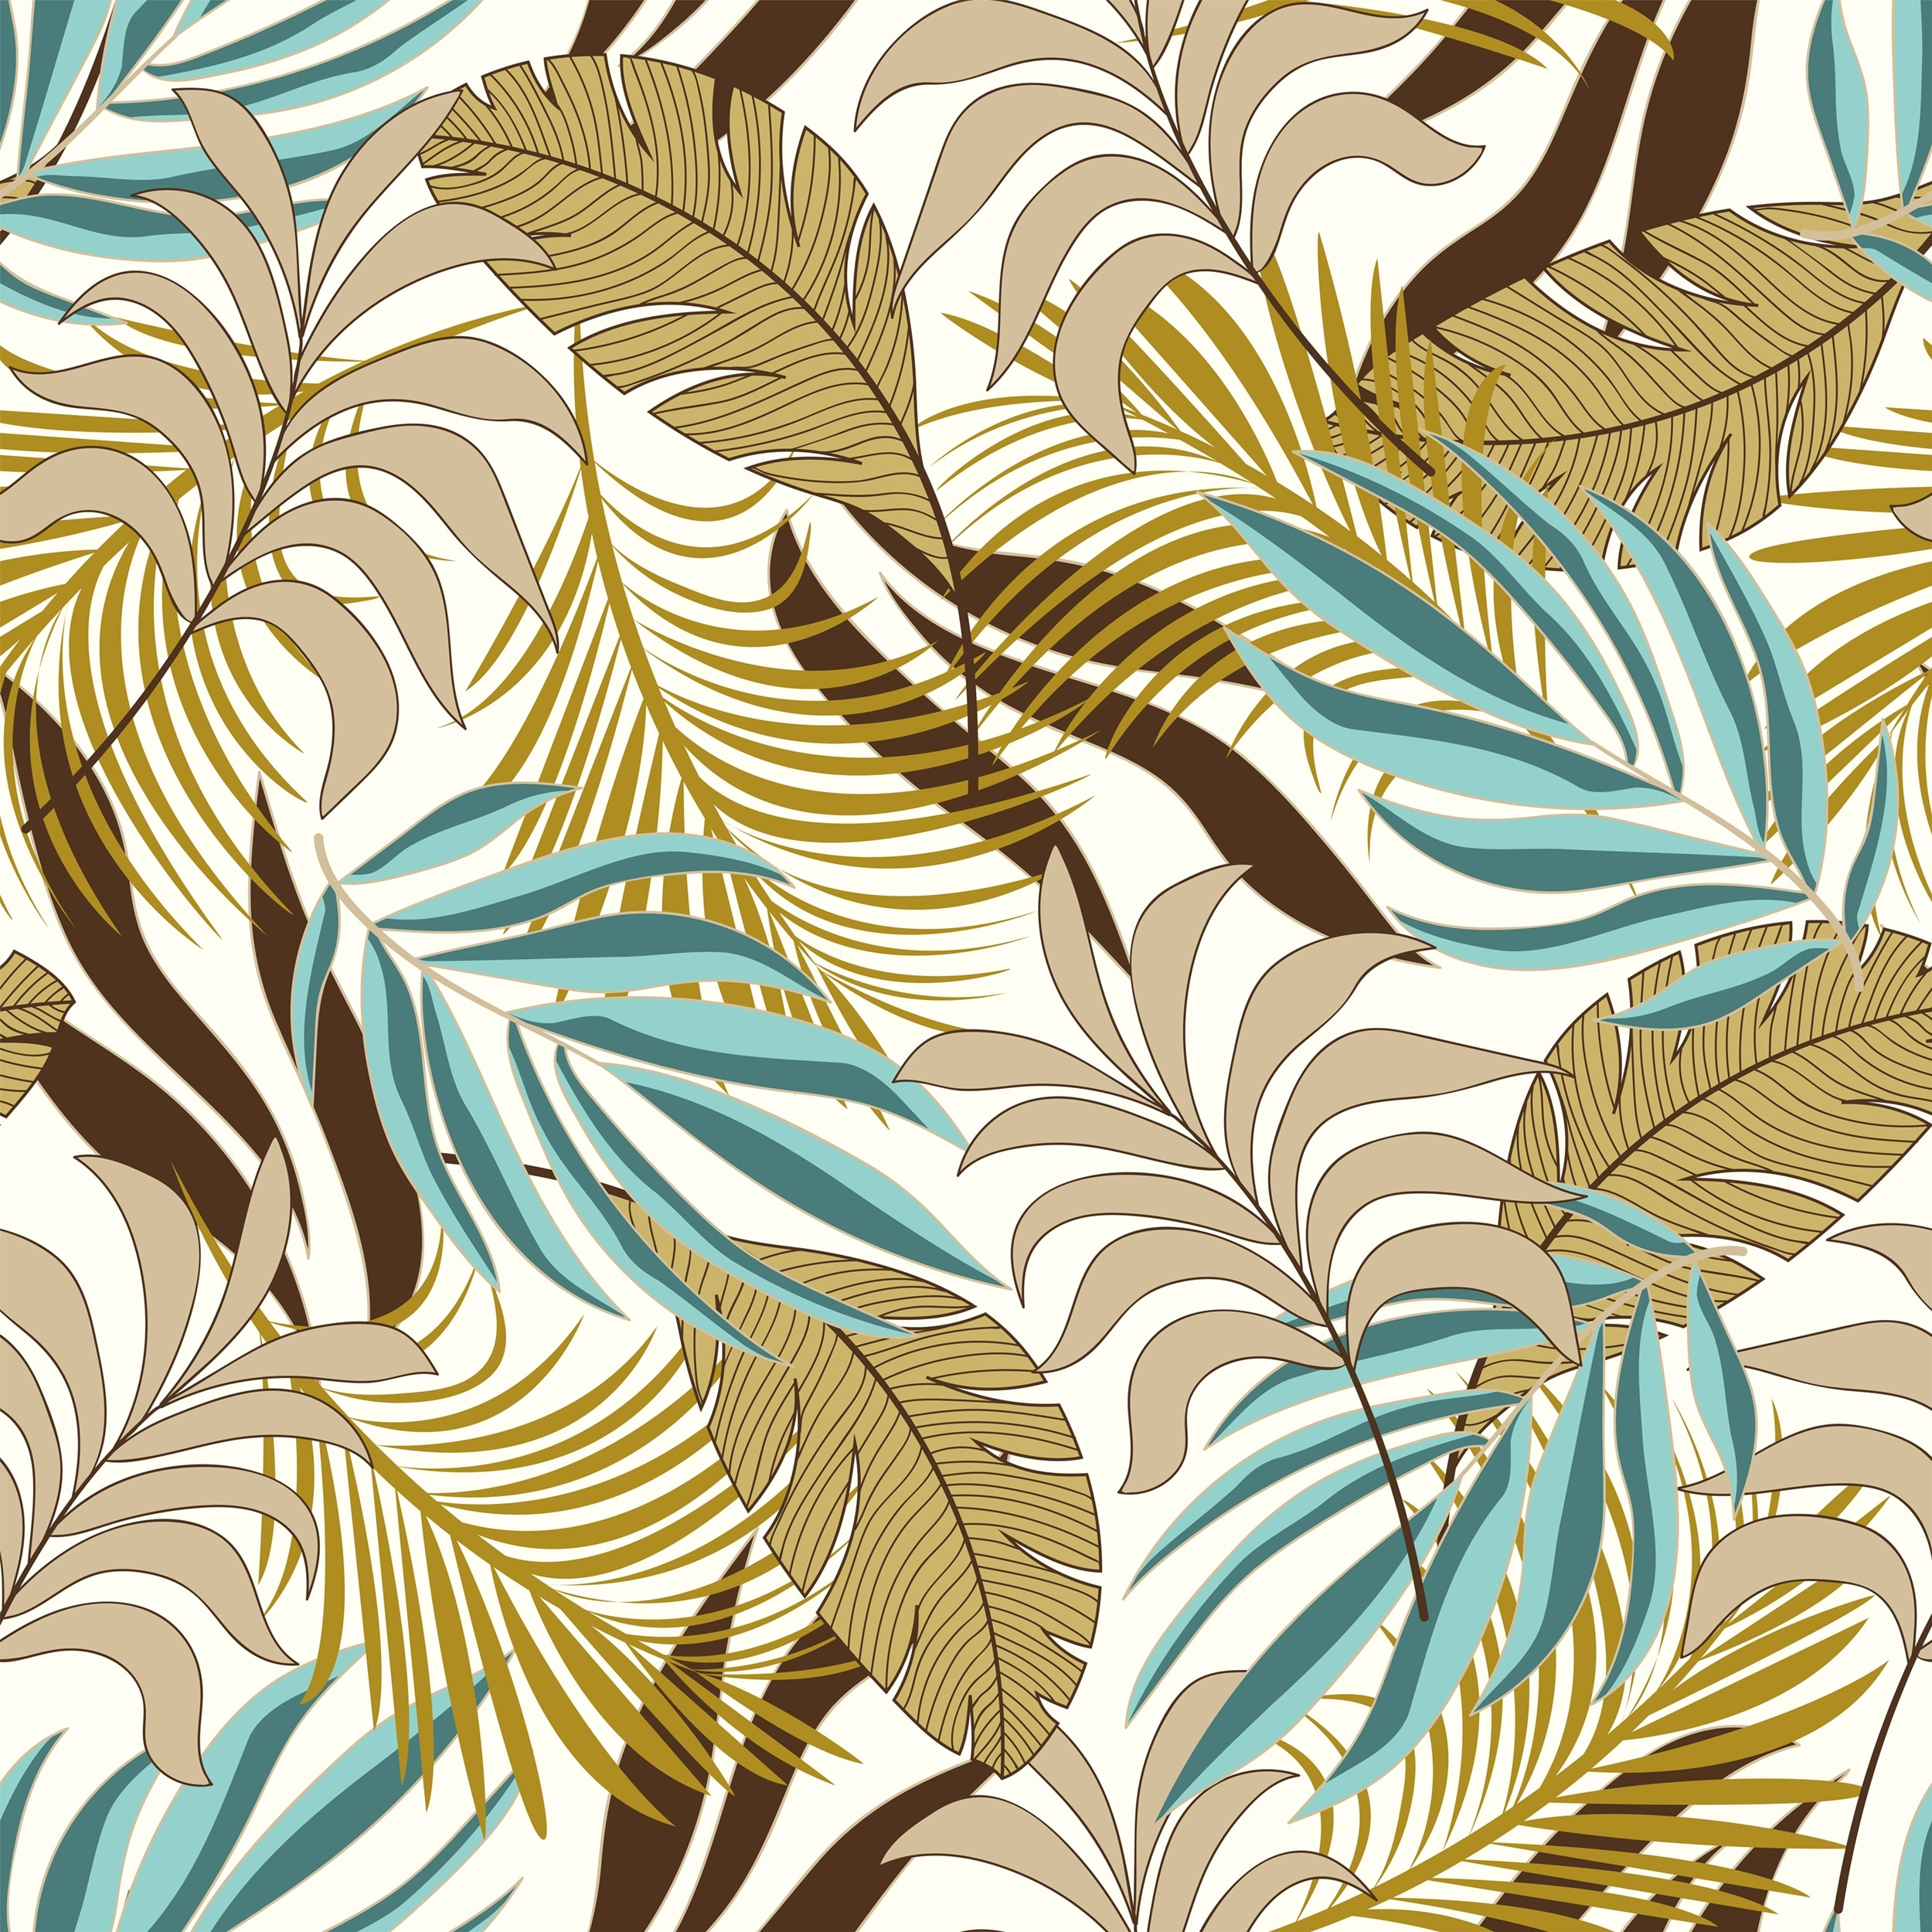 Wallpaper Roll Peacock Feathers Teal Gold Feather Blue And Green 24in x 27ft